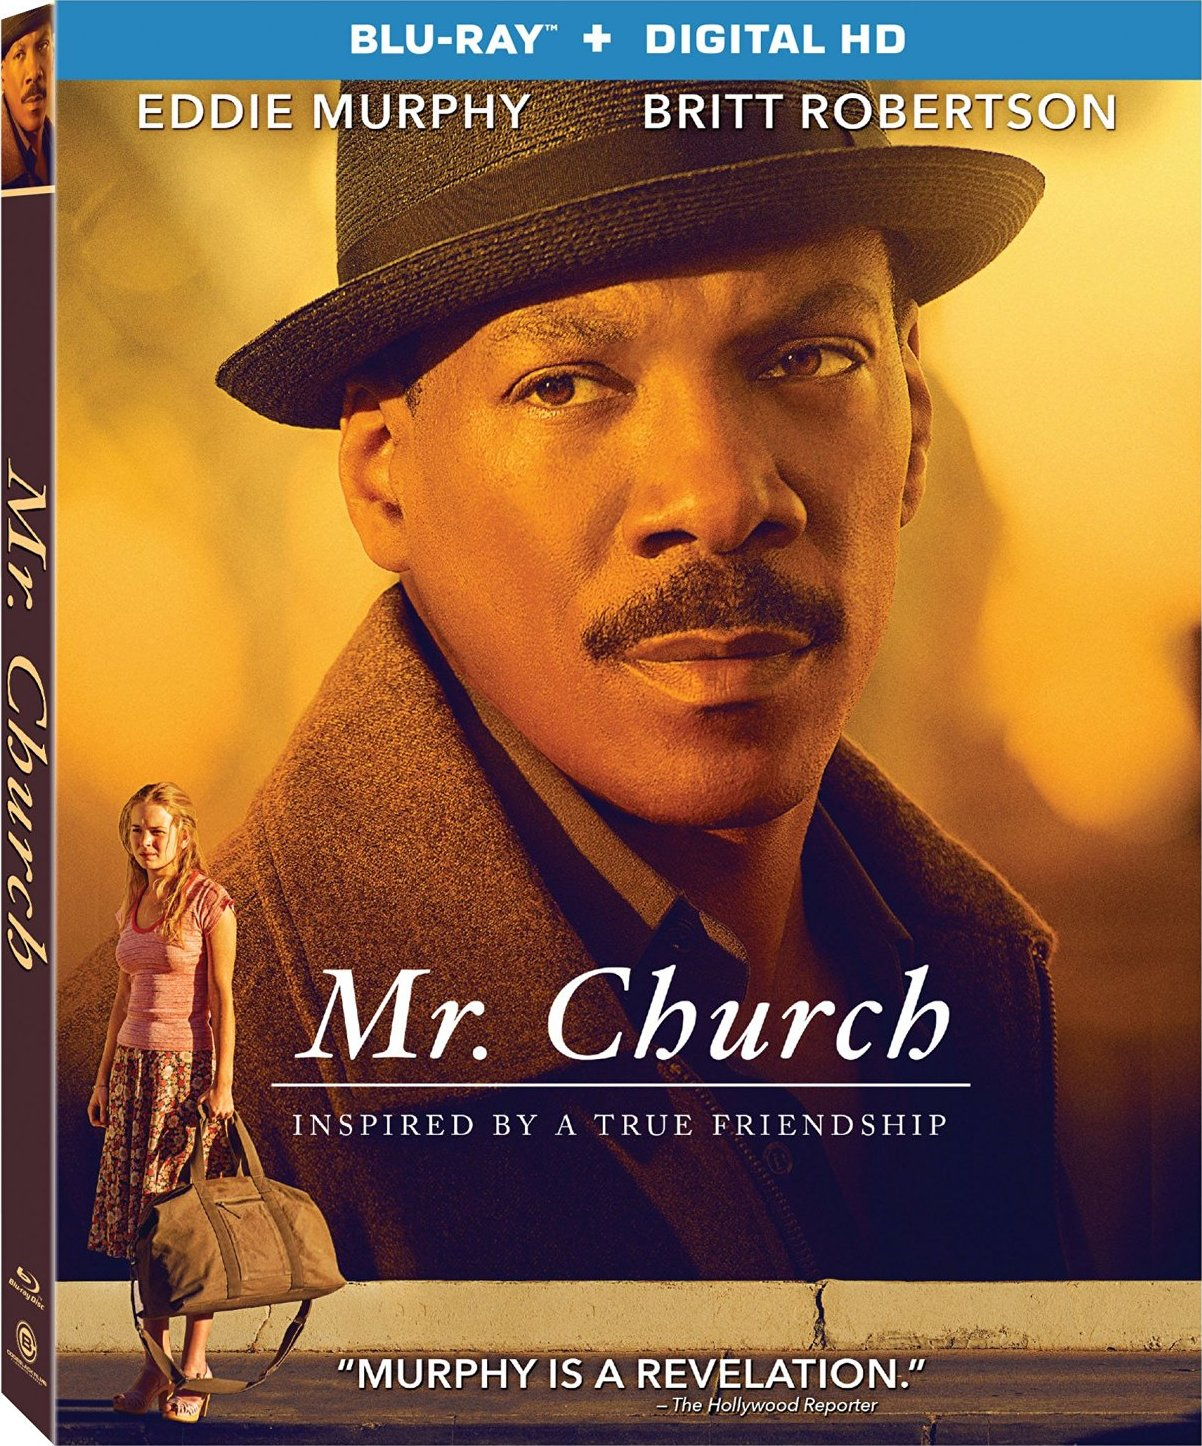 Mr. Church (2016) poster image